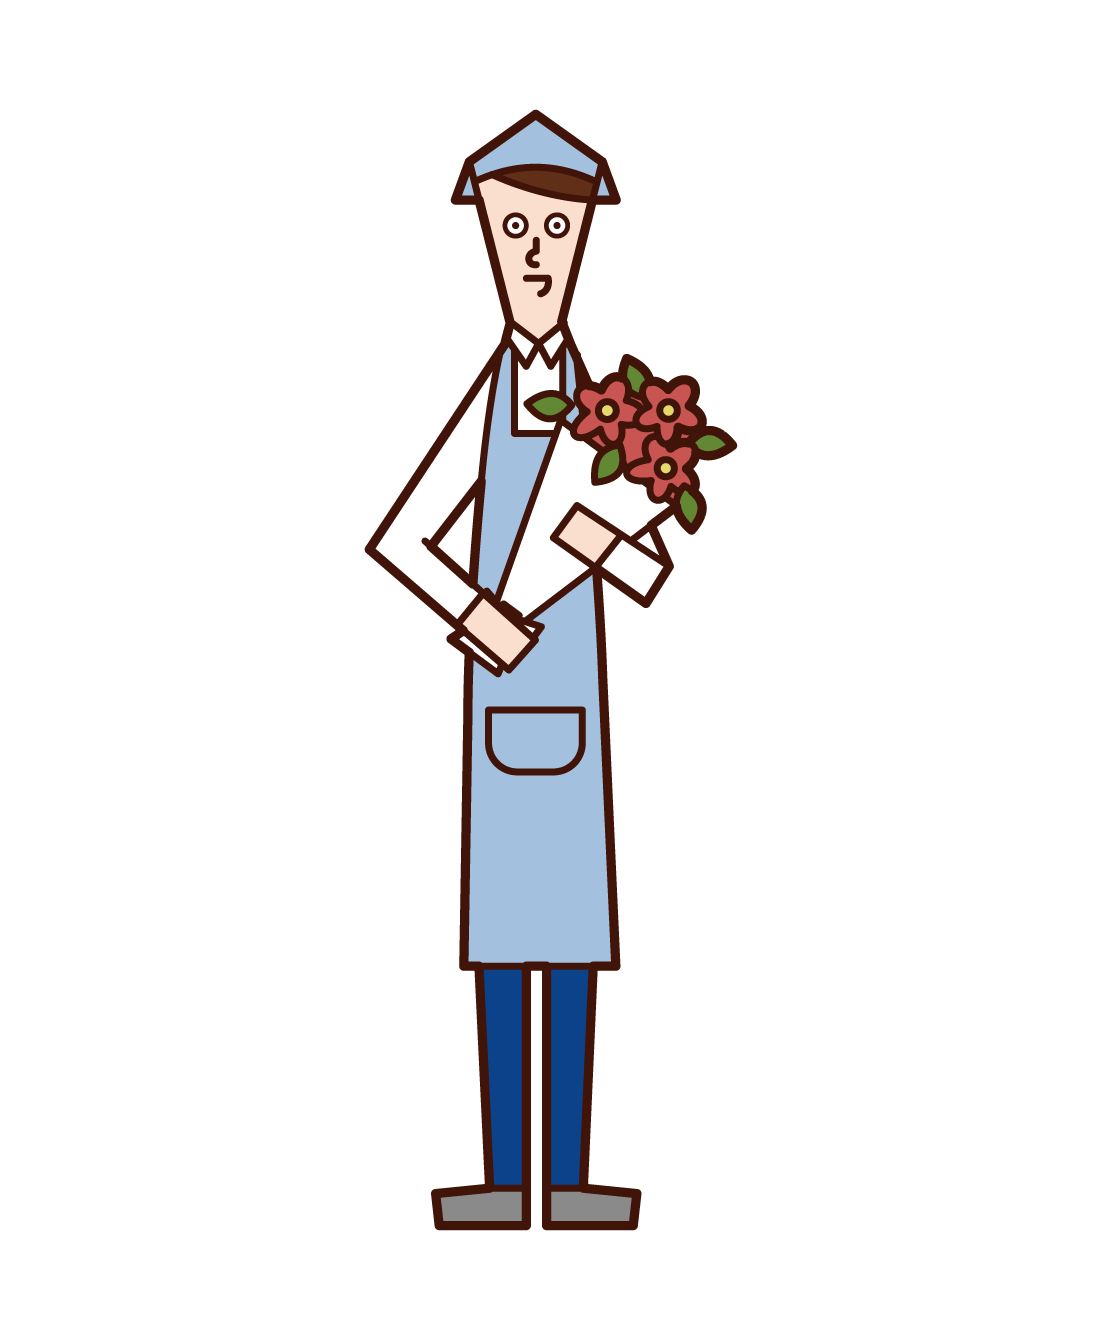 Illustration of a florist clerk (man)